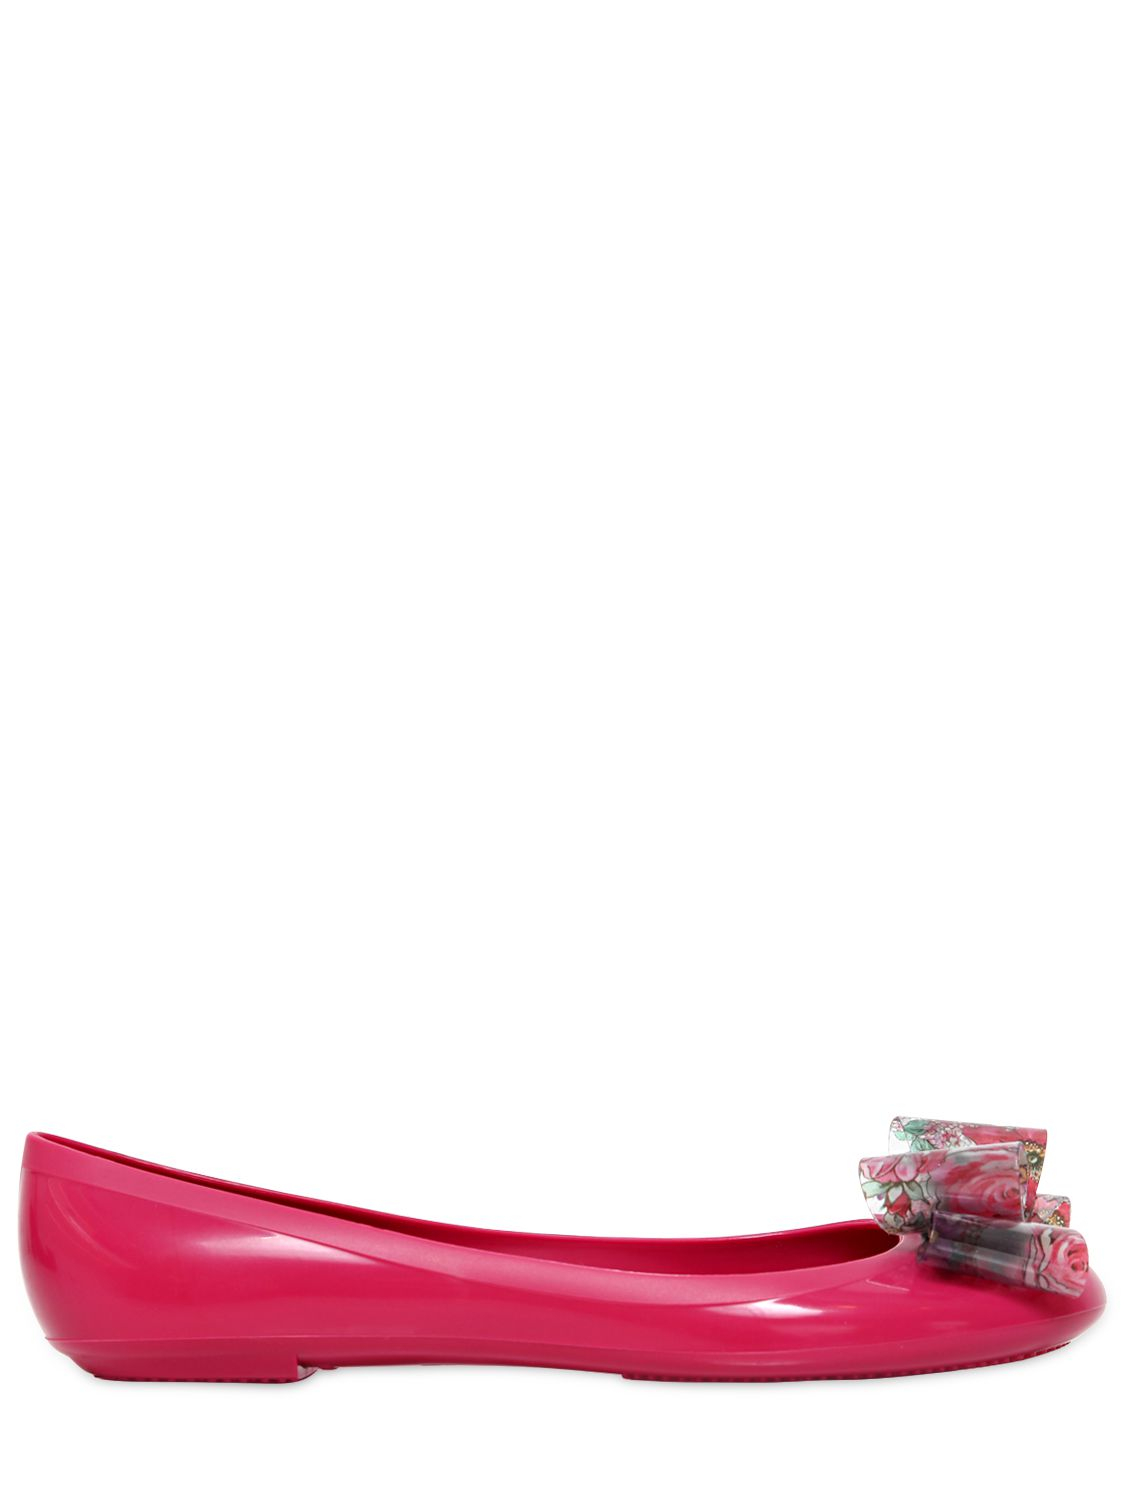 c9b870fcb396 Lyst - RED Valentino Rubber Ballerina Flats with Floral Bow in Pink